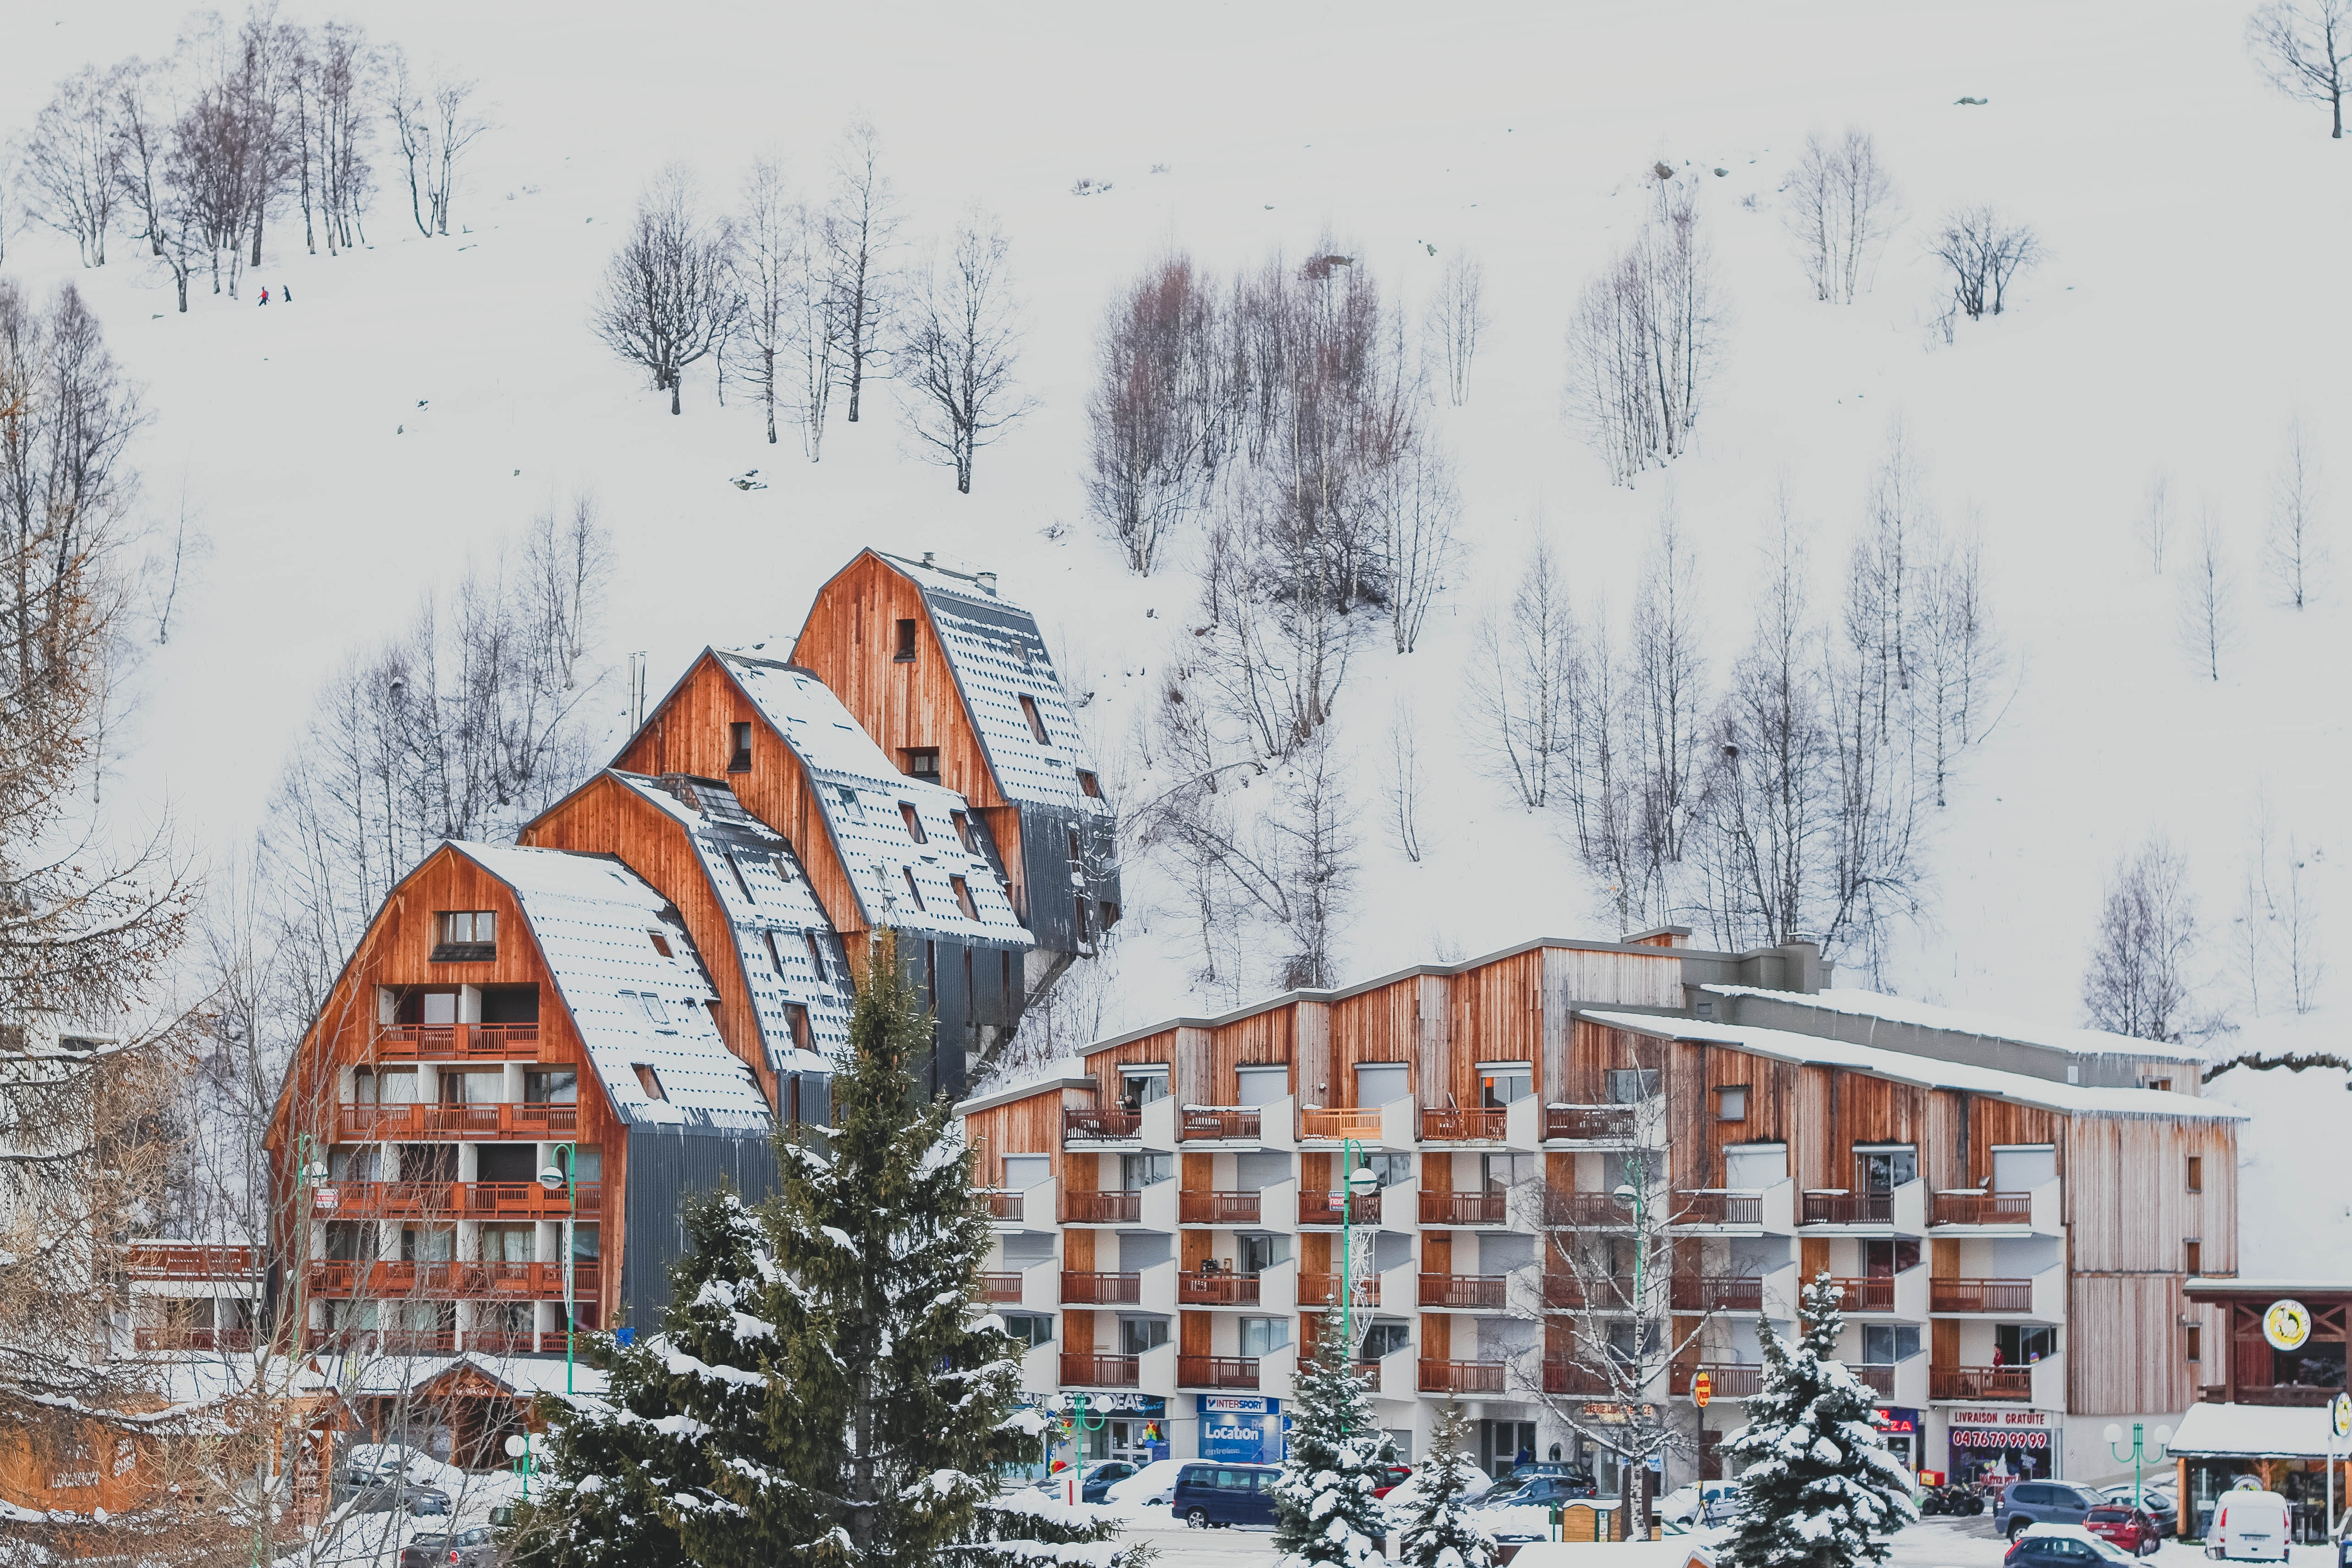 snow covers building on mountain